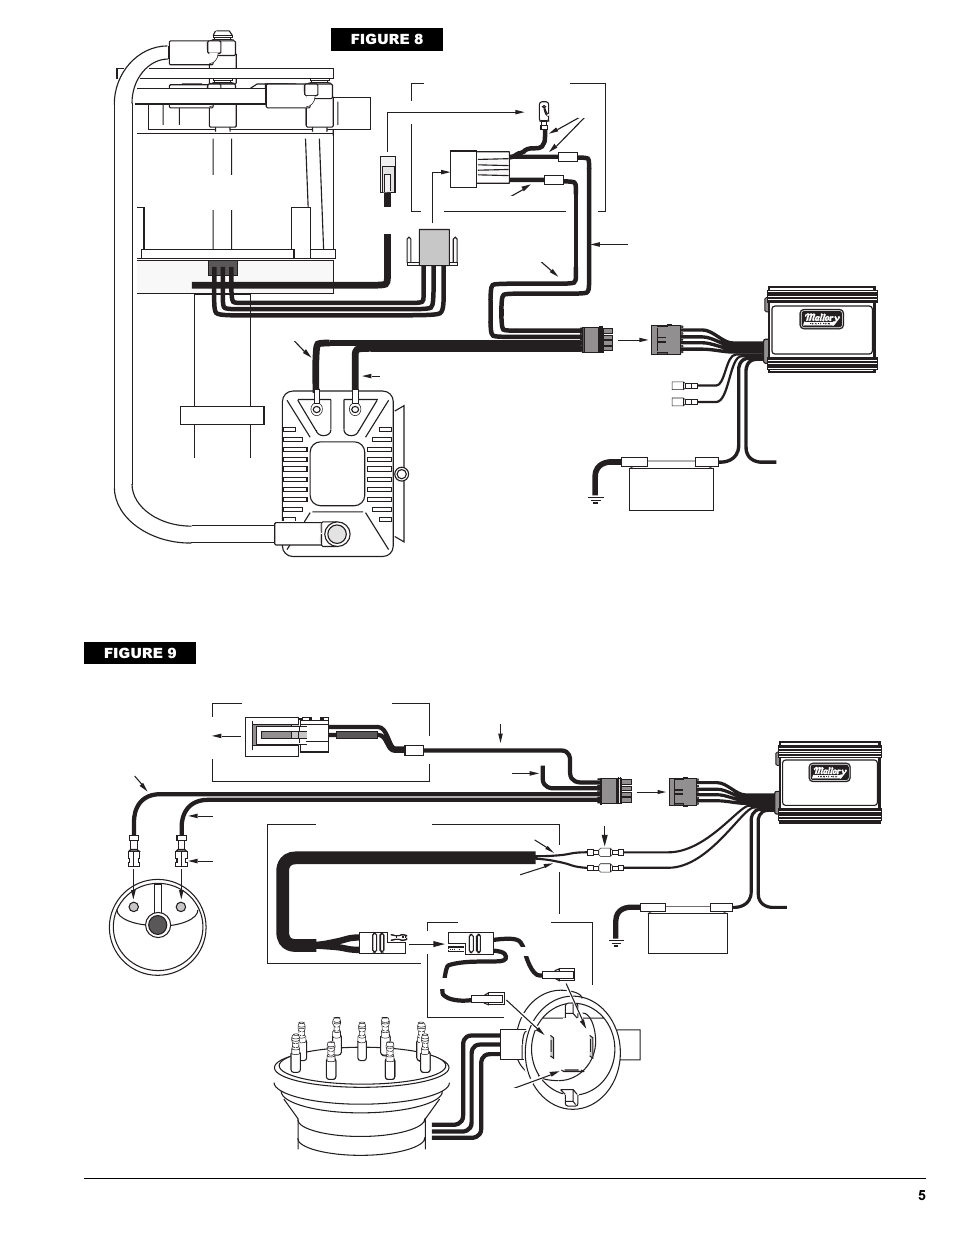 mallory ignition wiring diagram mallory ignition wiring diagram #6